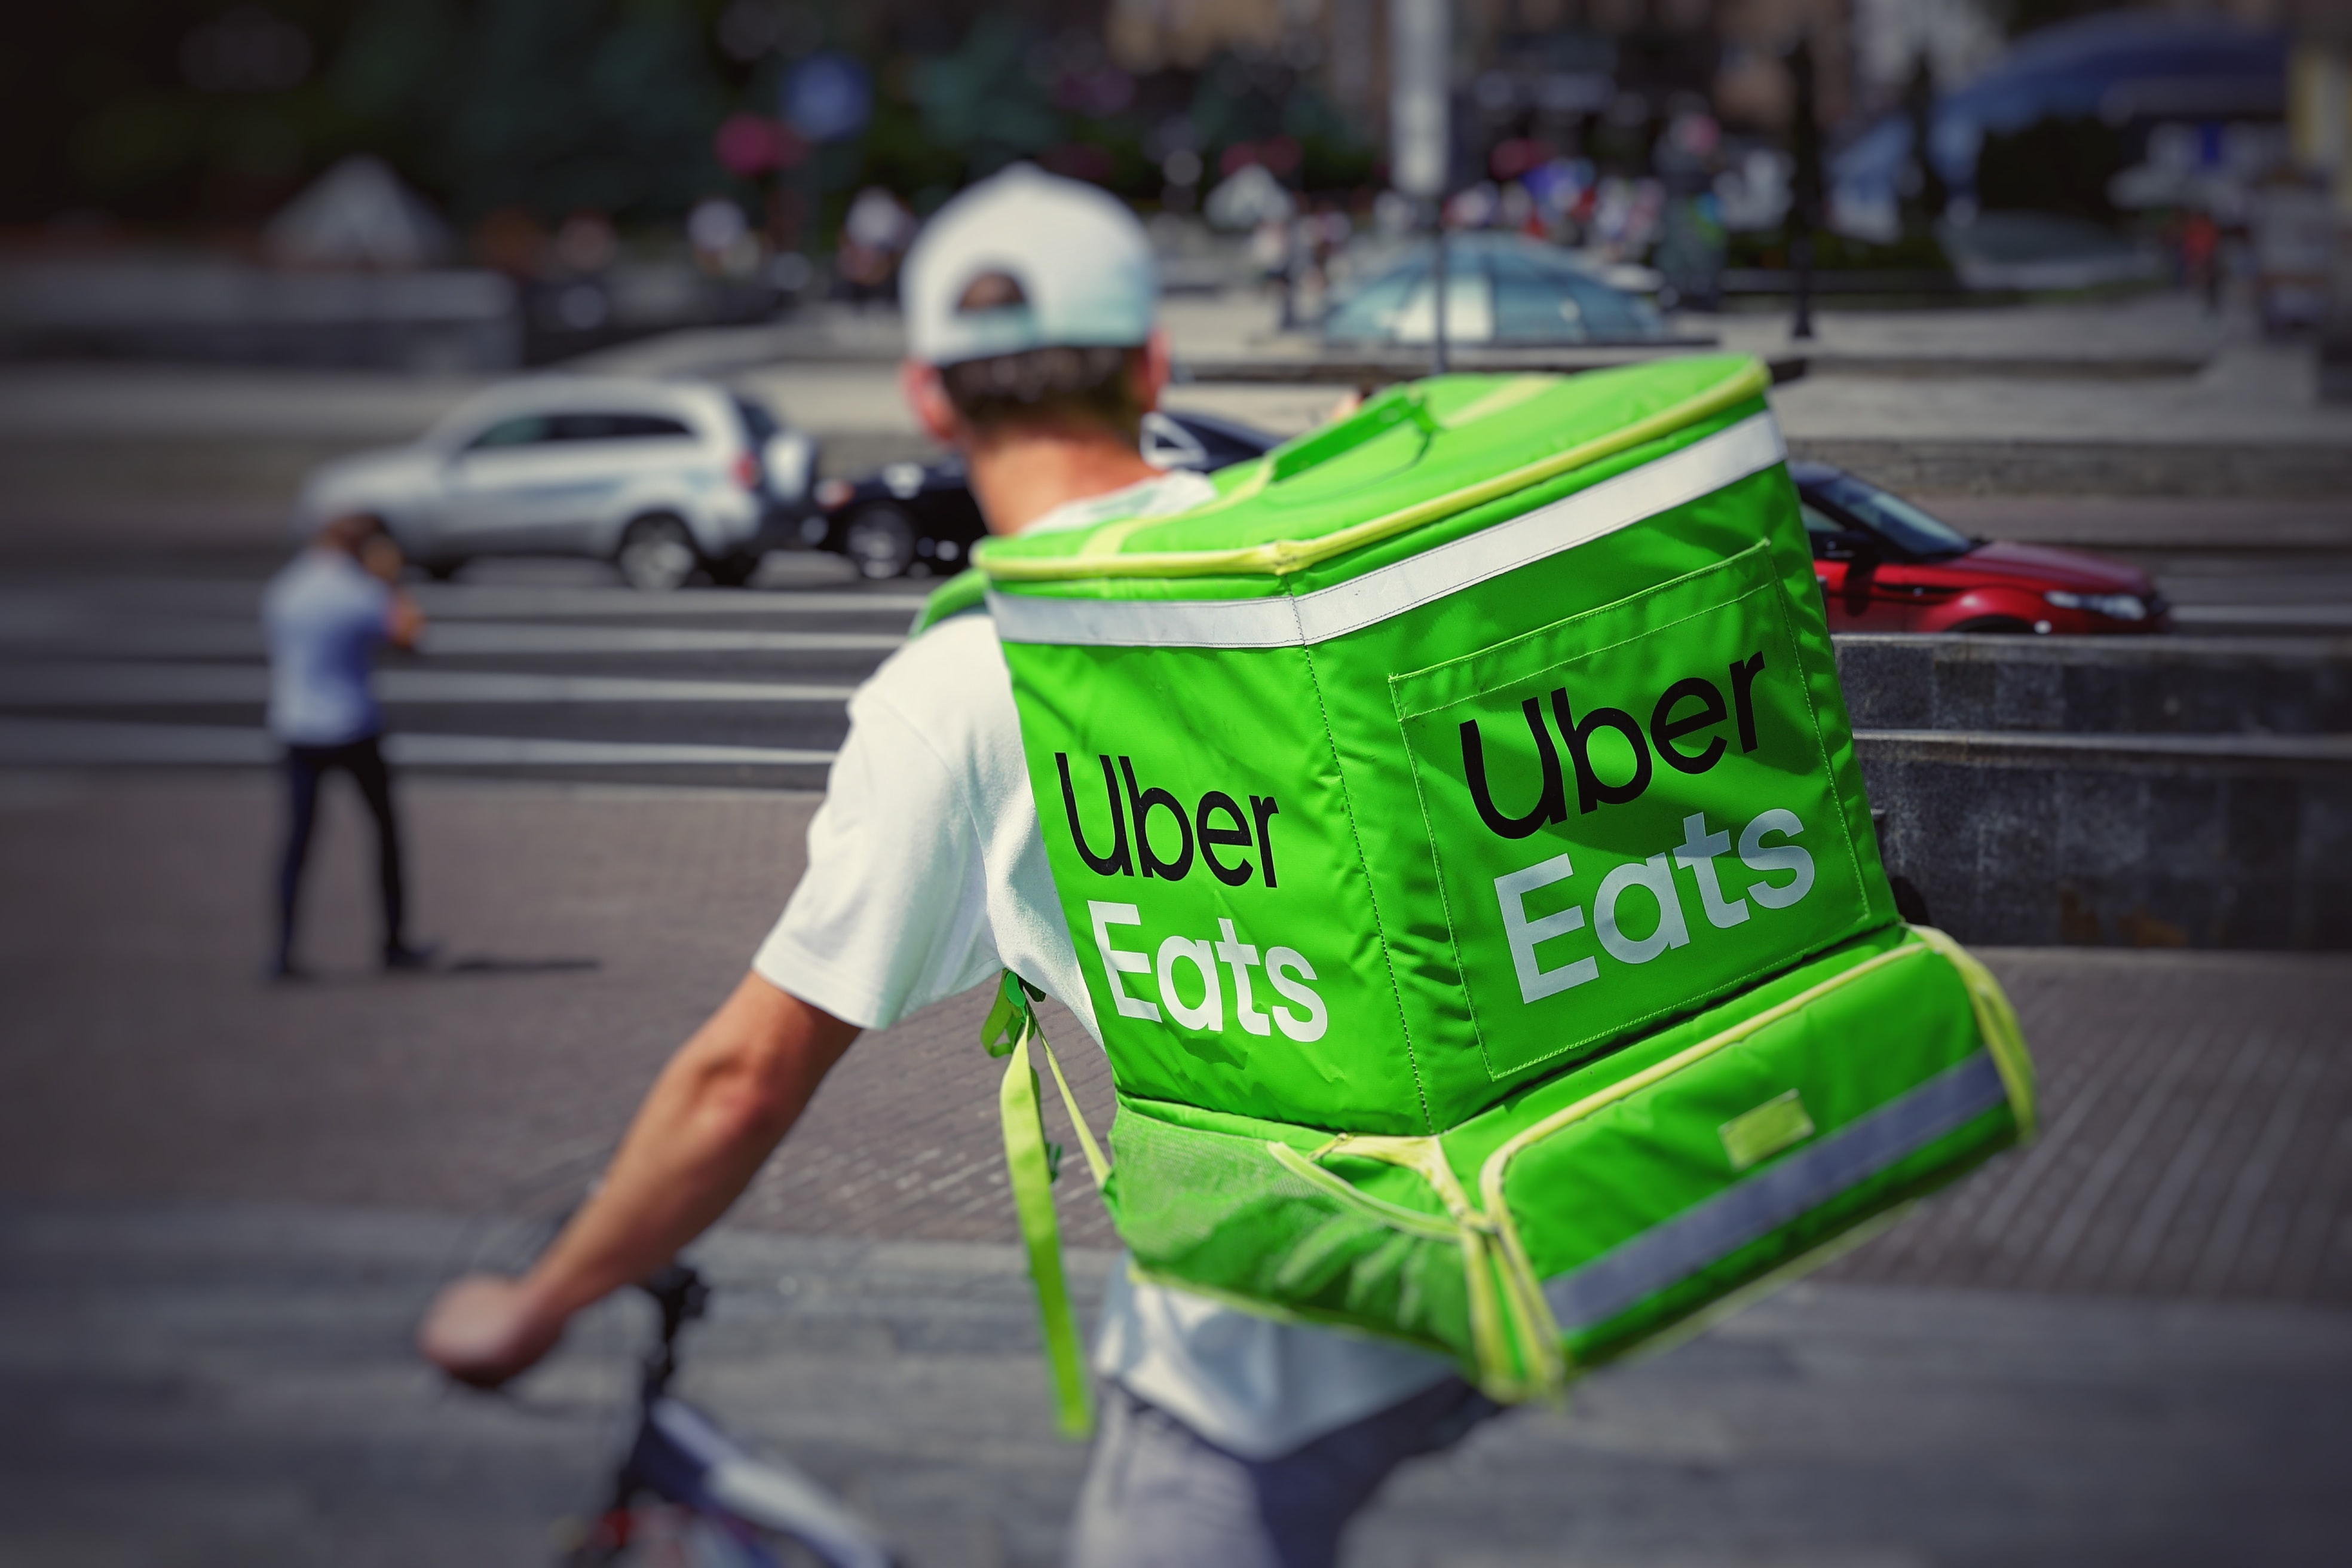 uber eats third party delivery restaurant